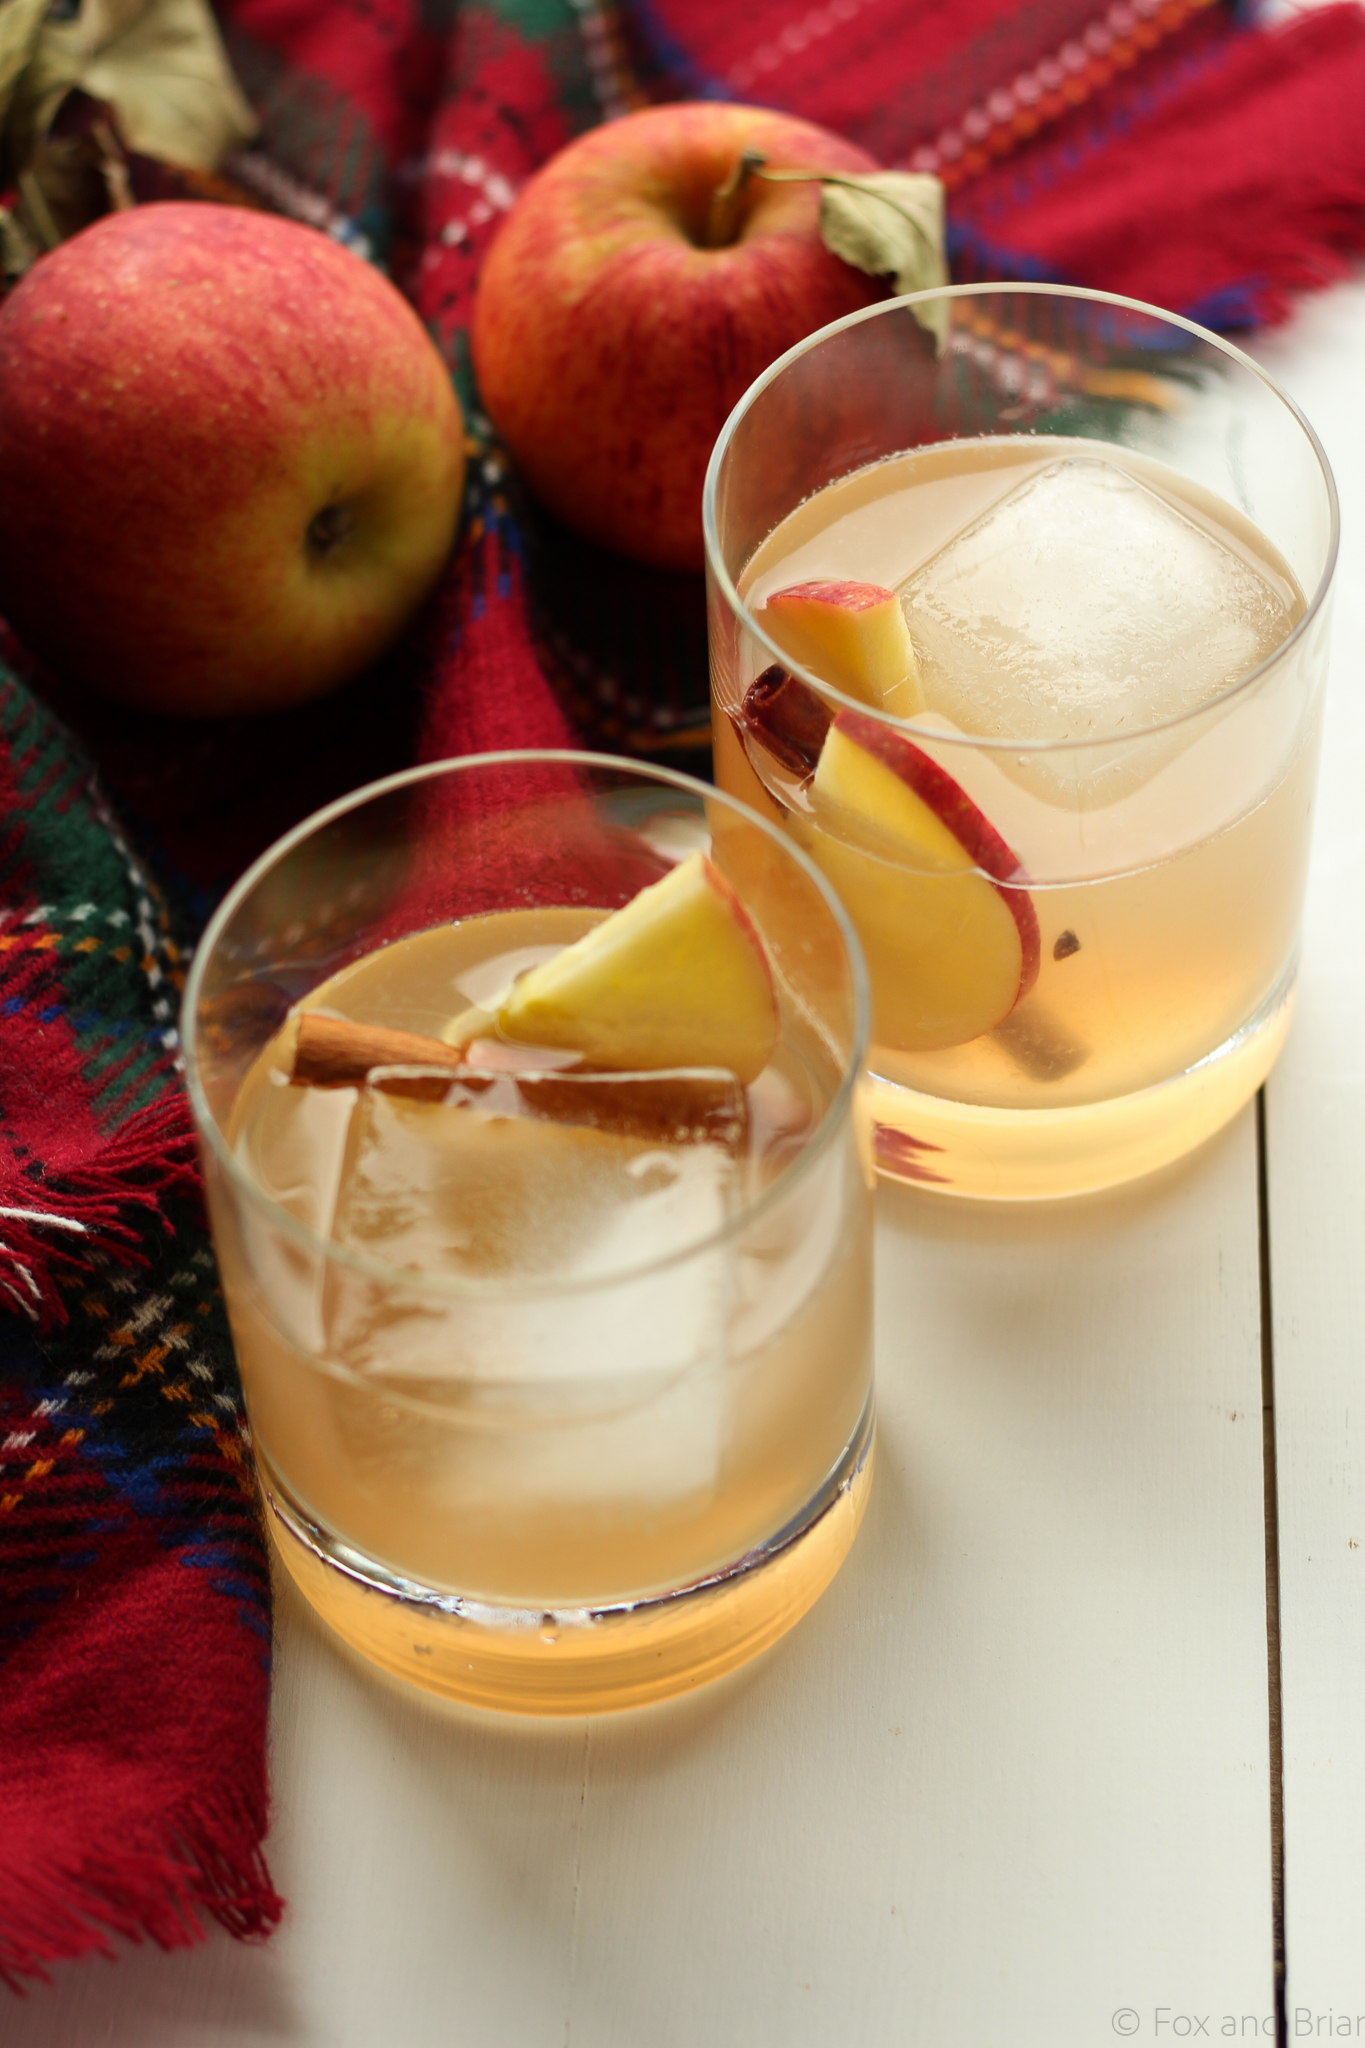 Maple Whiskey Cider from Fox and Briar